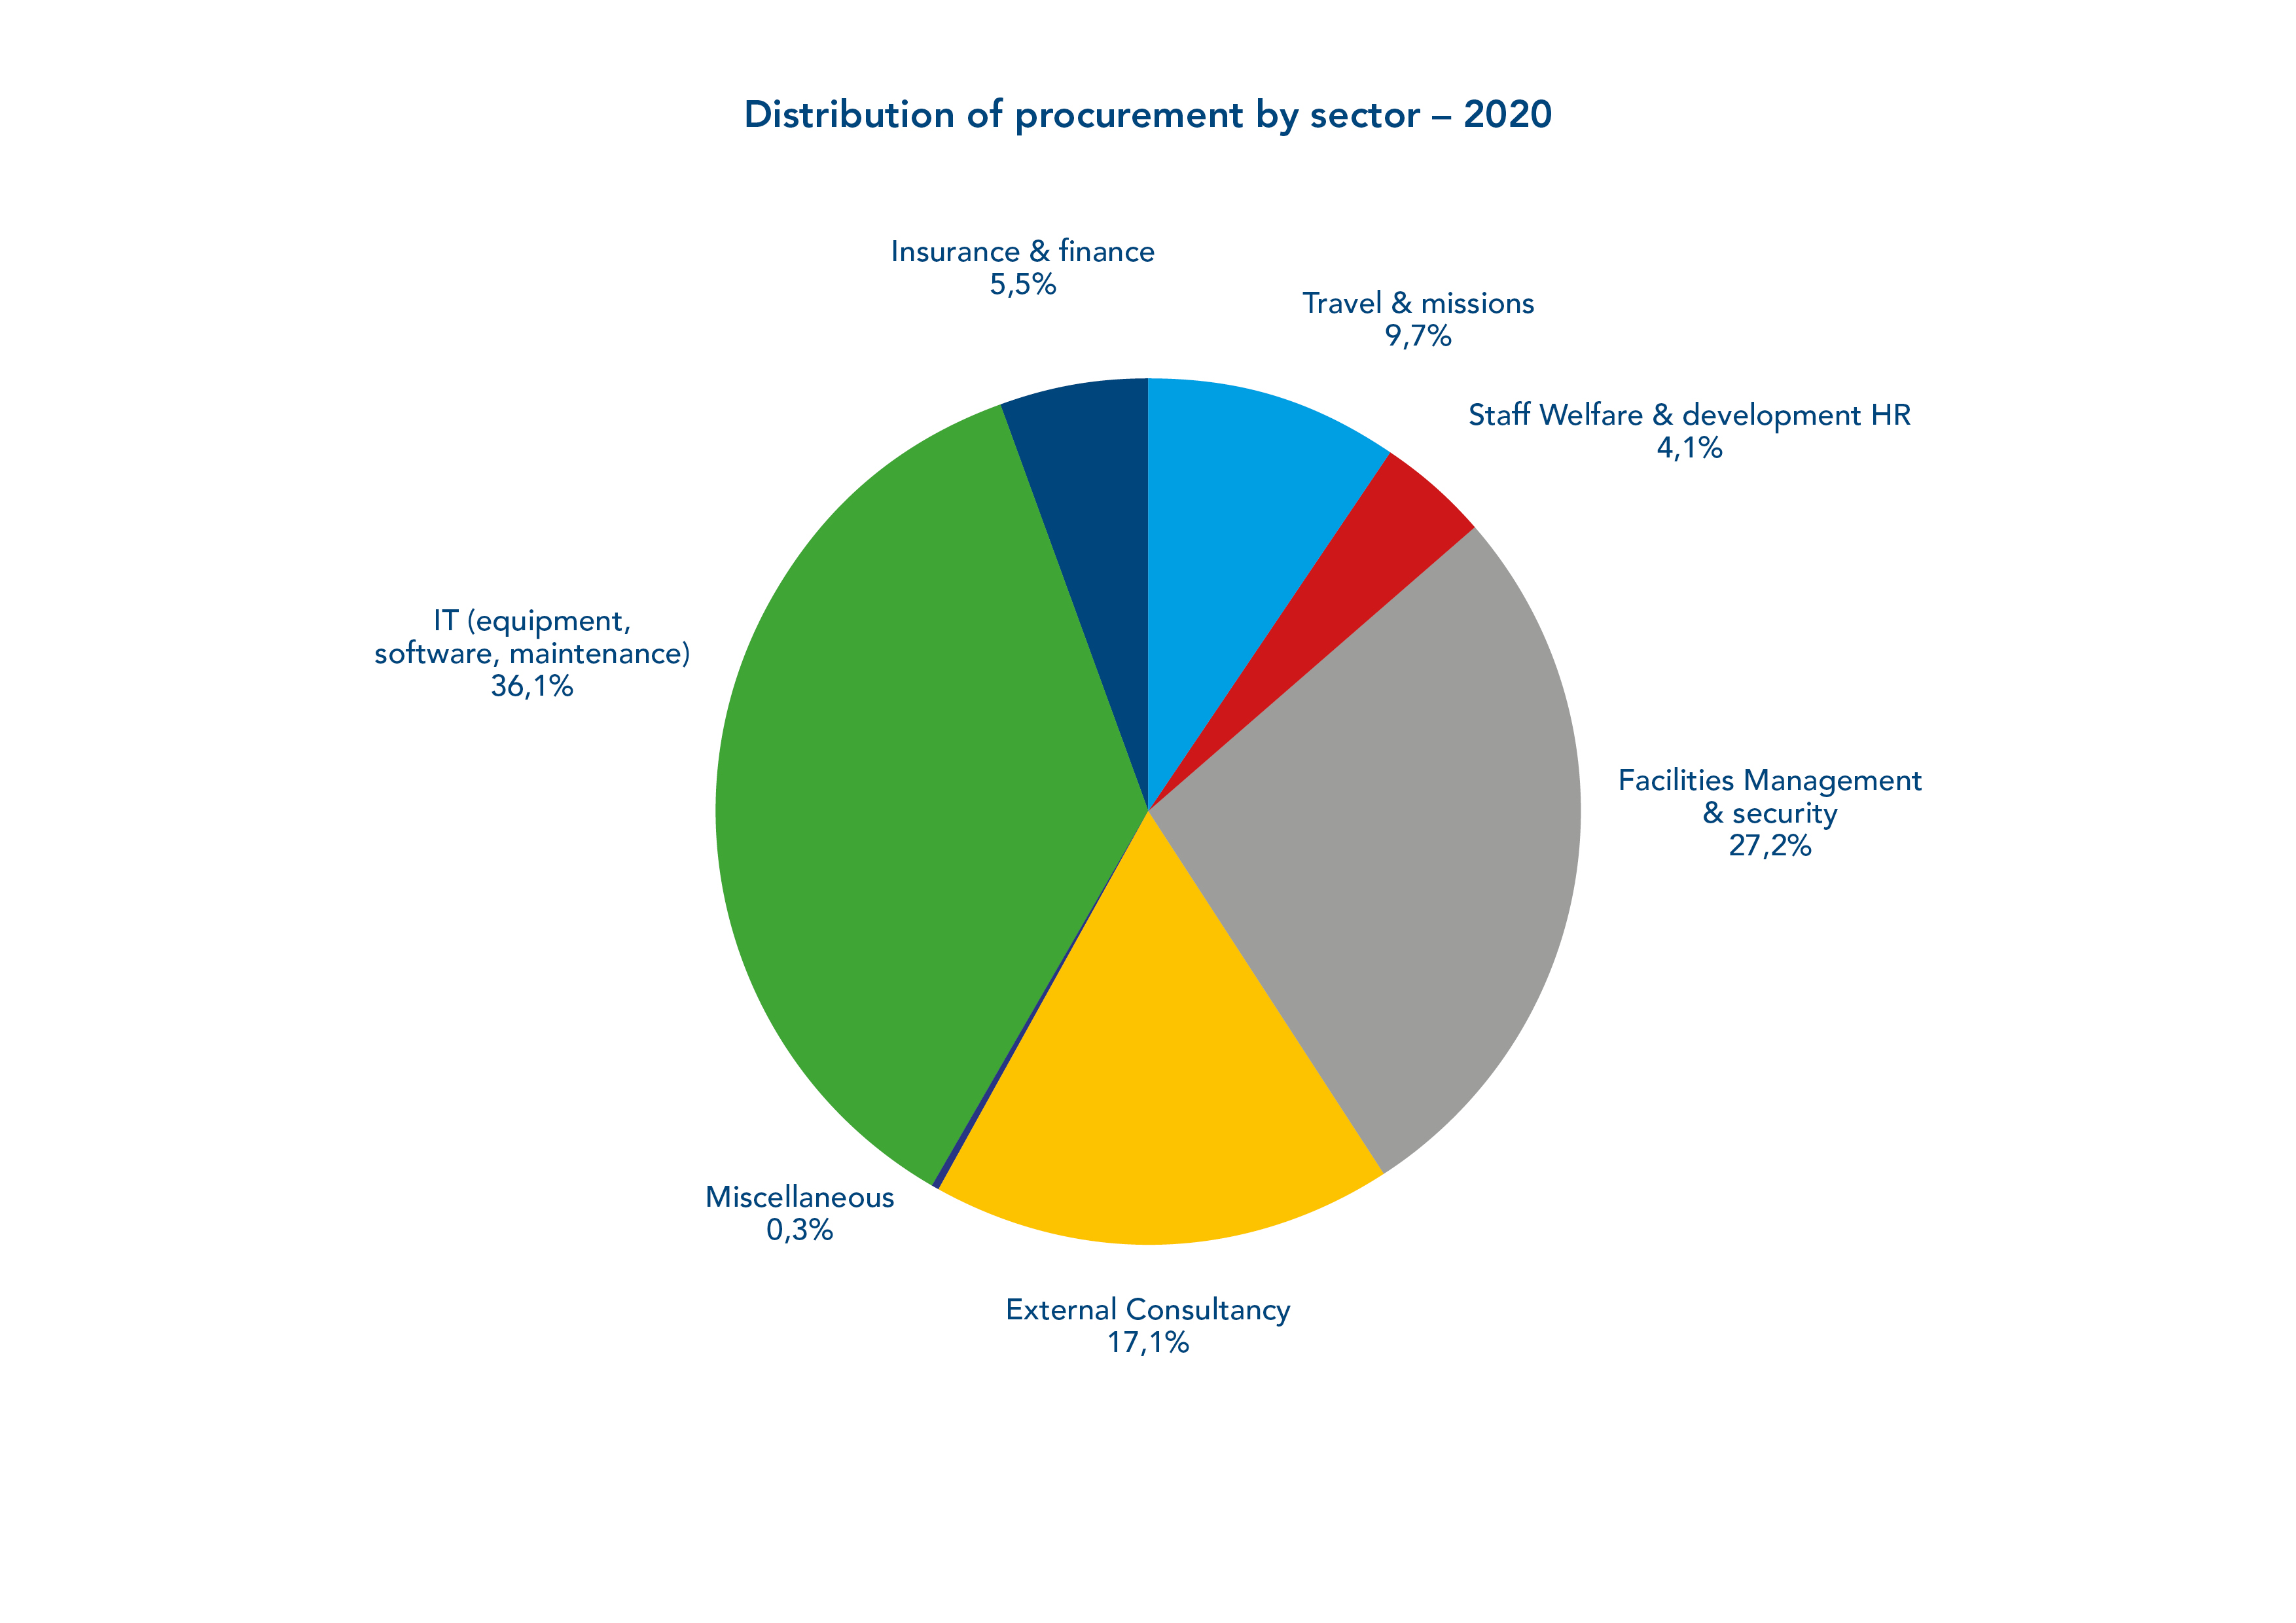 Distribution of procurement by Sector - 2020